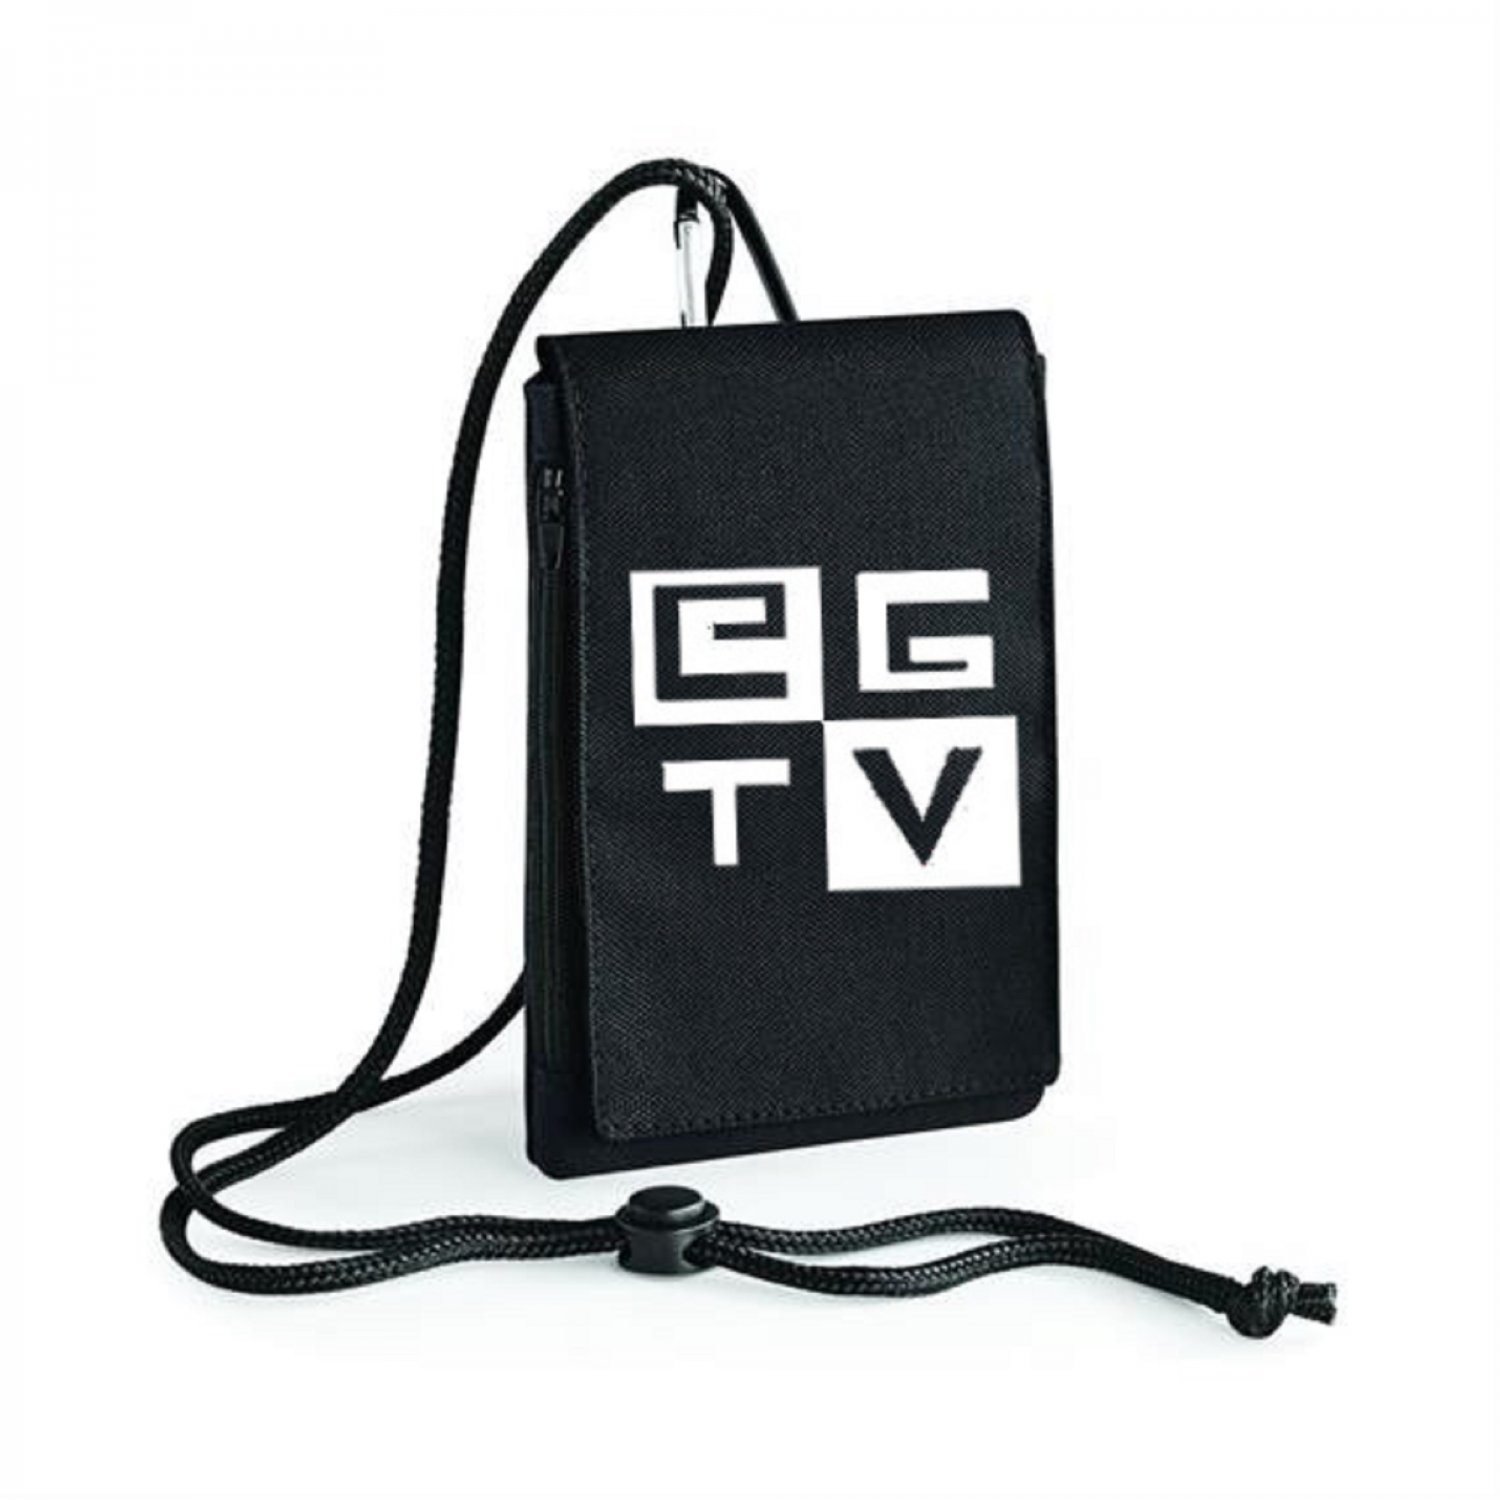 ethan gamer tv Inspired Bagbase Phone Pouch